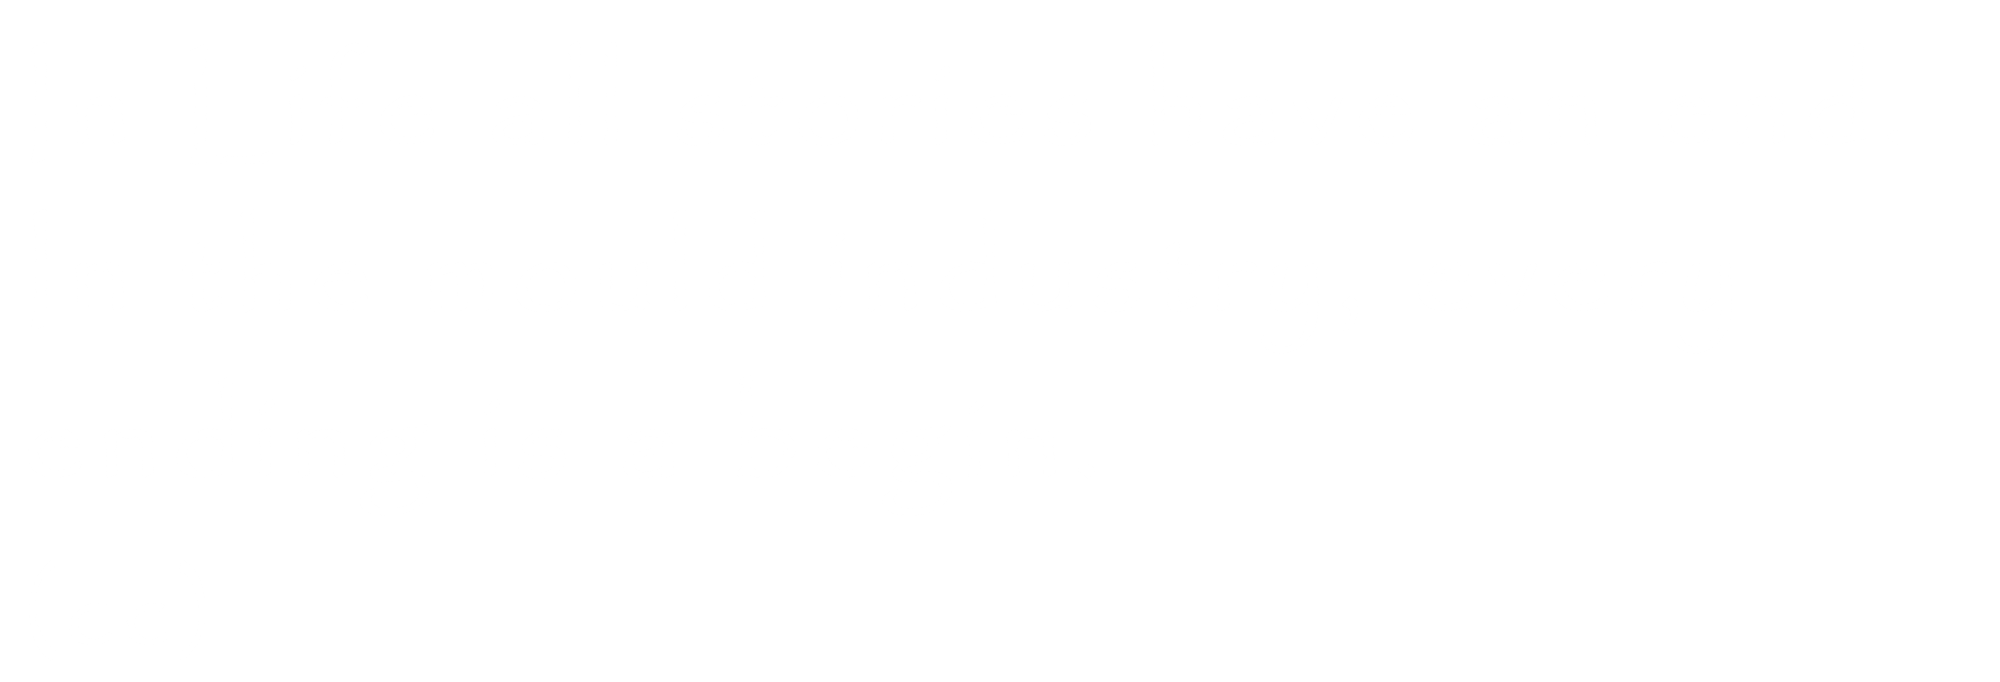 In Life all stories have and end, In the mould industry, every ending is a begin.